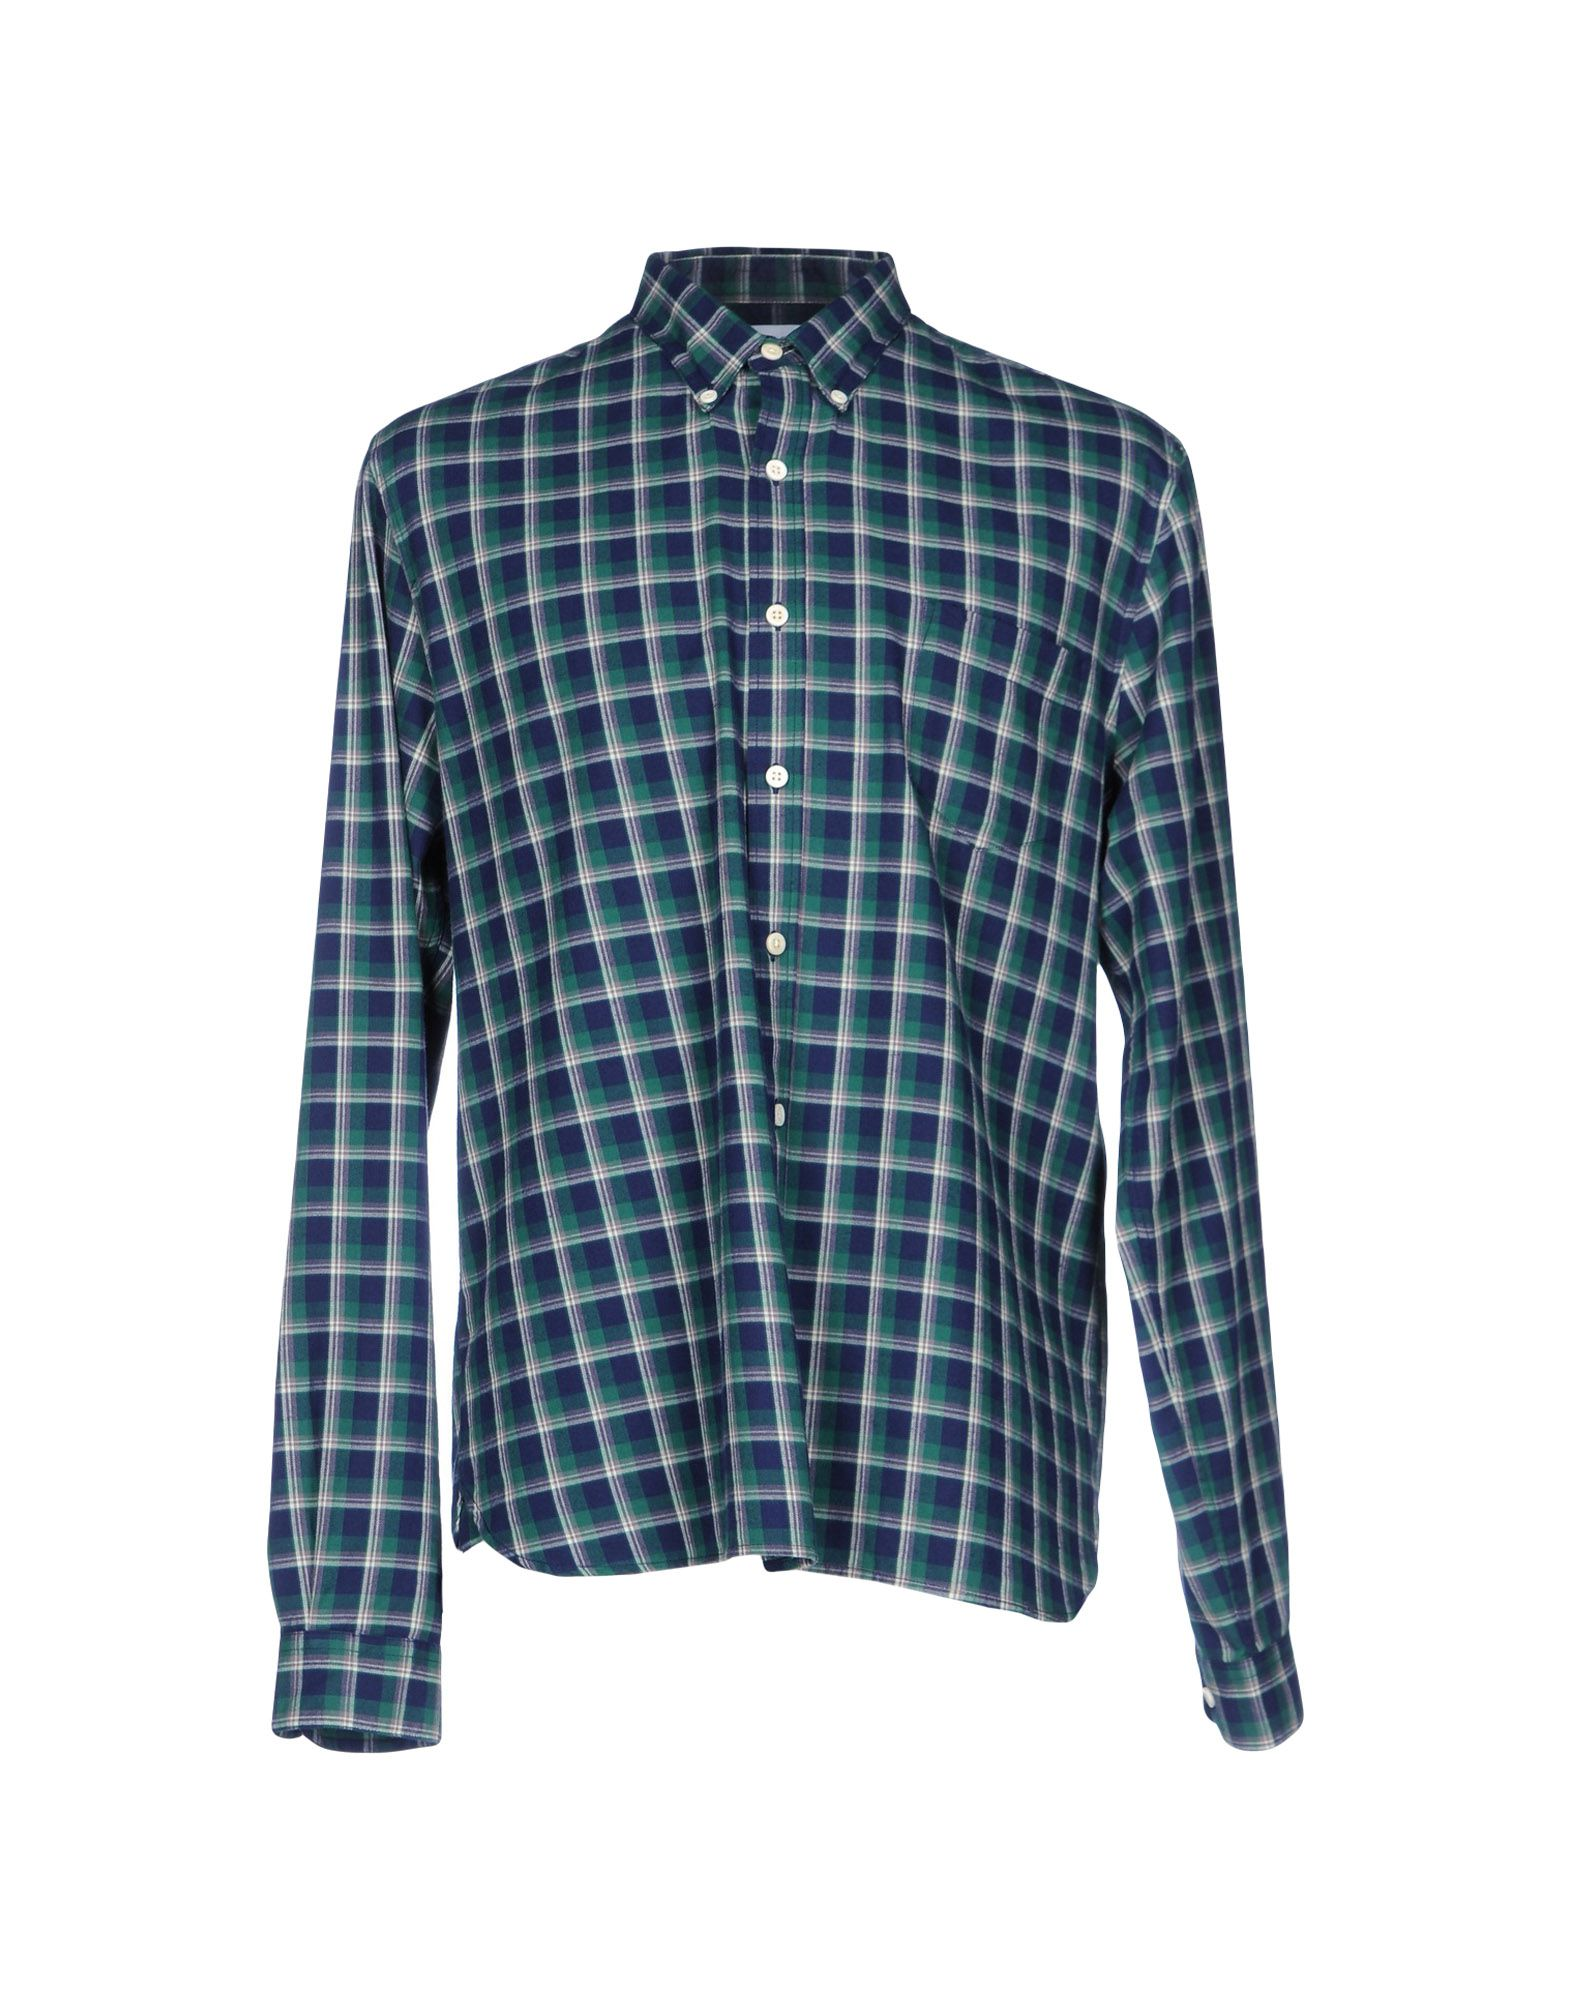 CUISSE DE GRENOUILLE Checked Shirt in Green